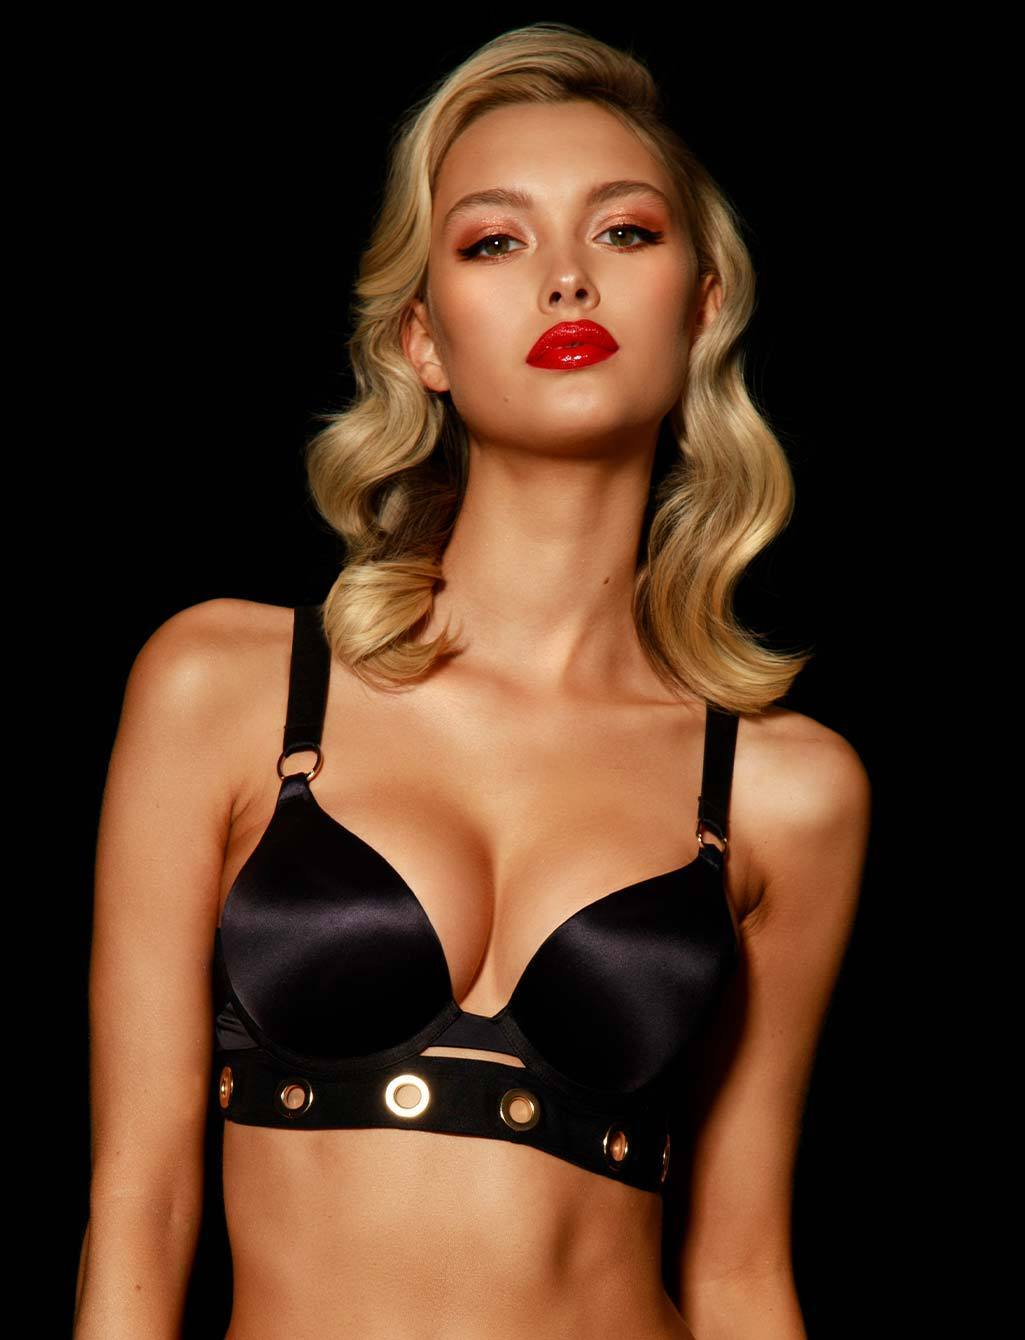 Ava Black Push Up Plunge Bra - Shop Lingerie | Honey Birdette